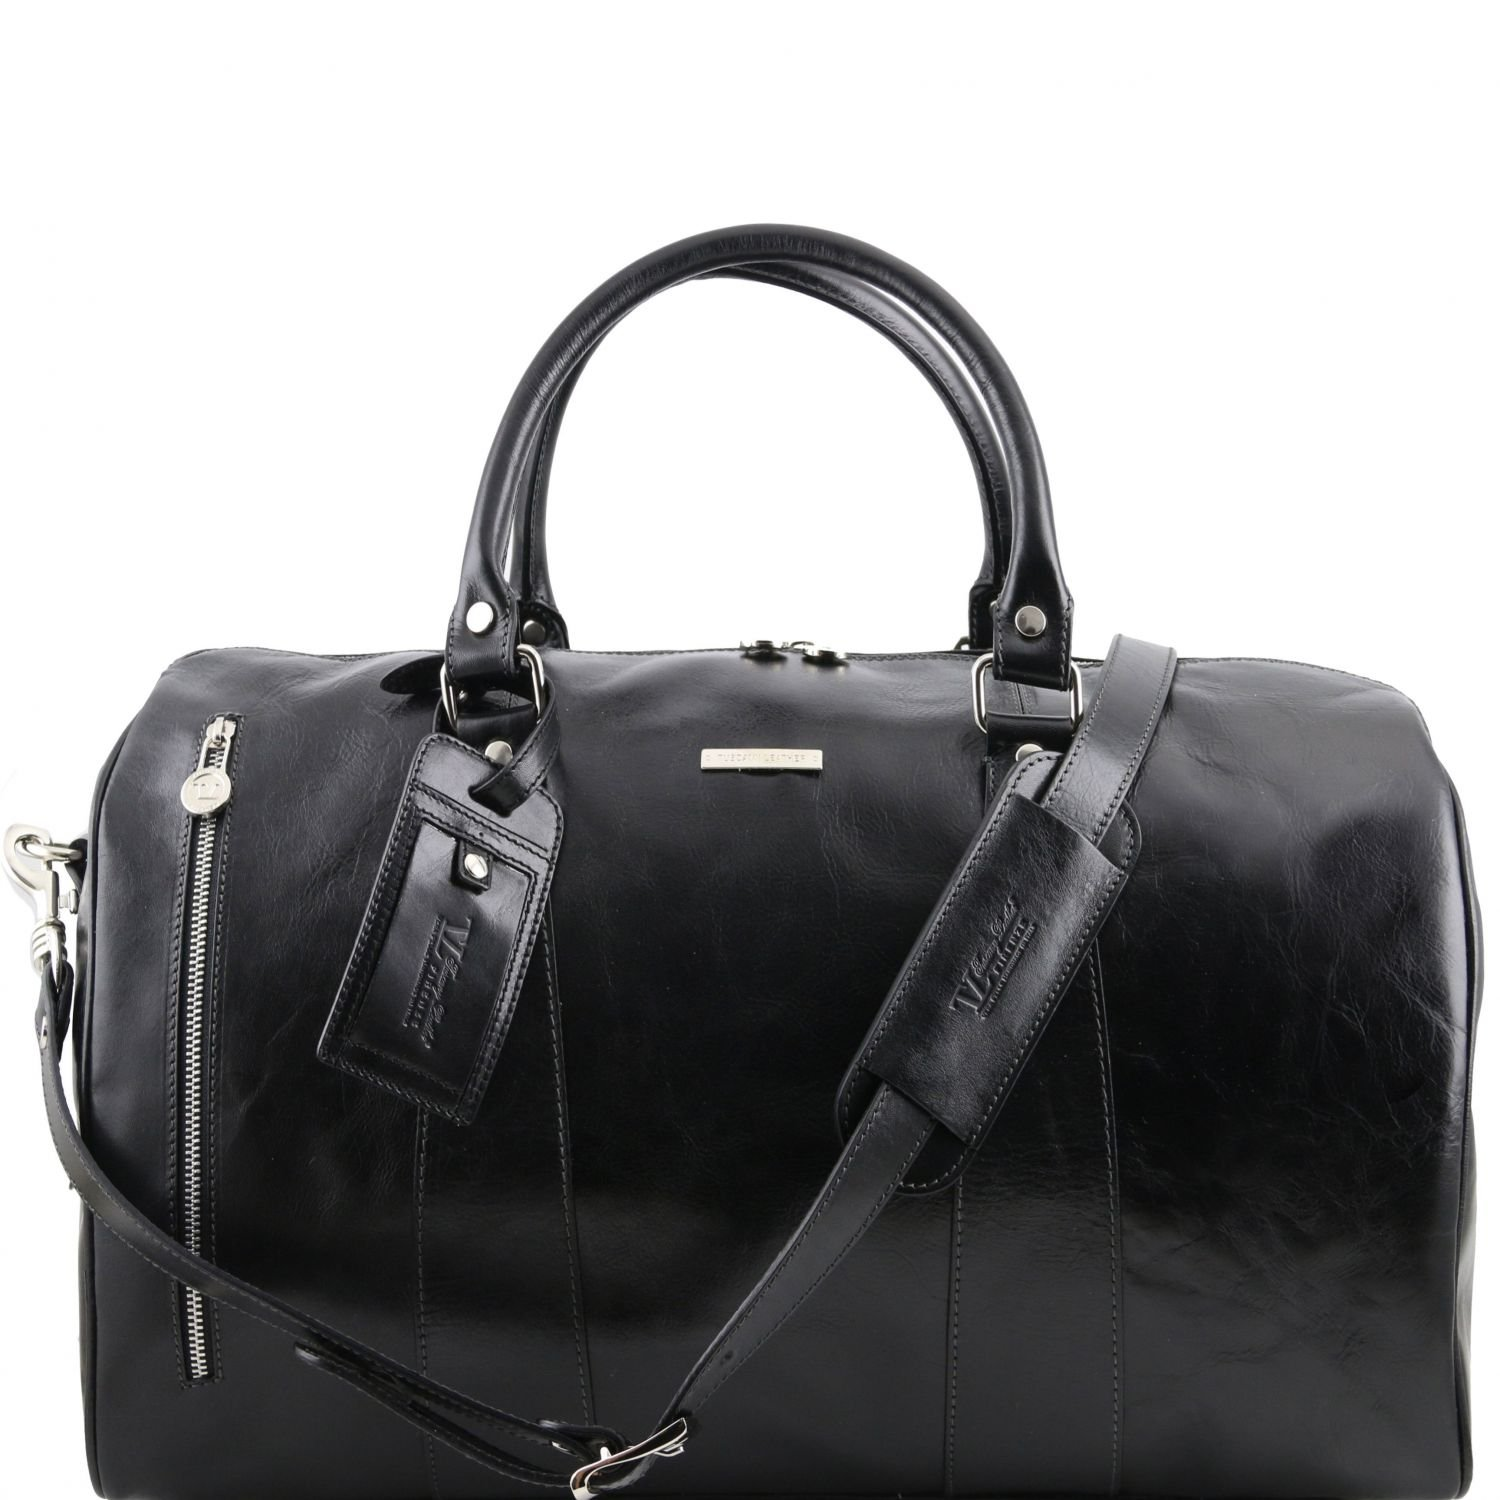 Tuscany Leather TL Voyager Travel leather duffle bag - Small size Black